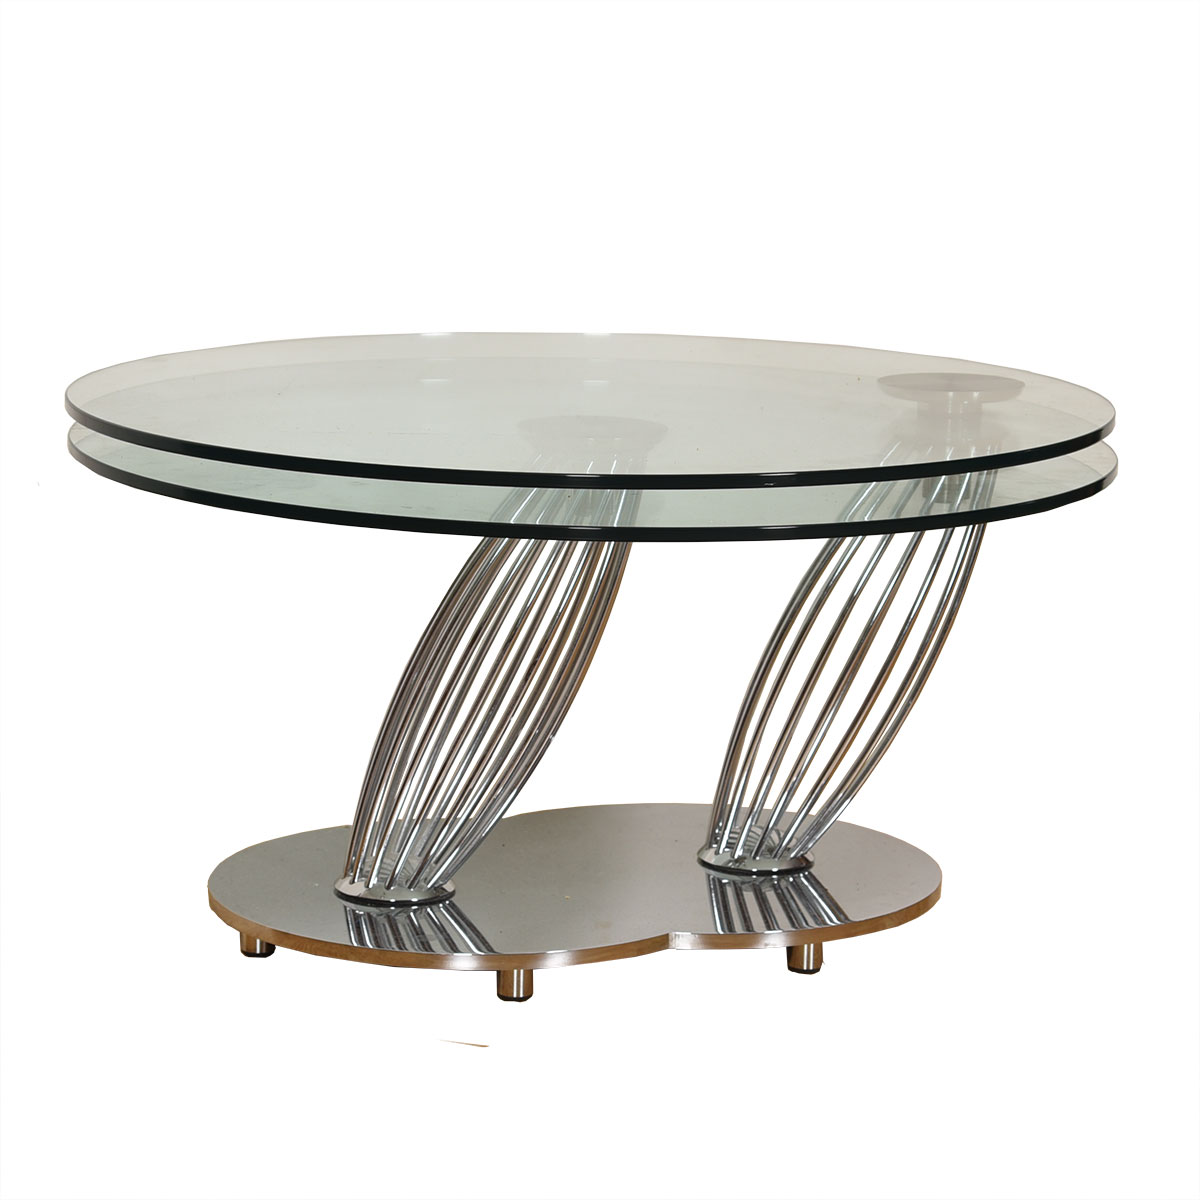 Vintage Chrome + Glass Round Rotating Double-Top Coffee Table